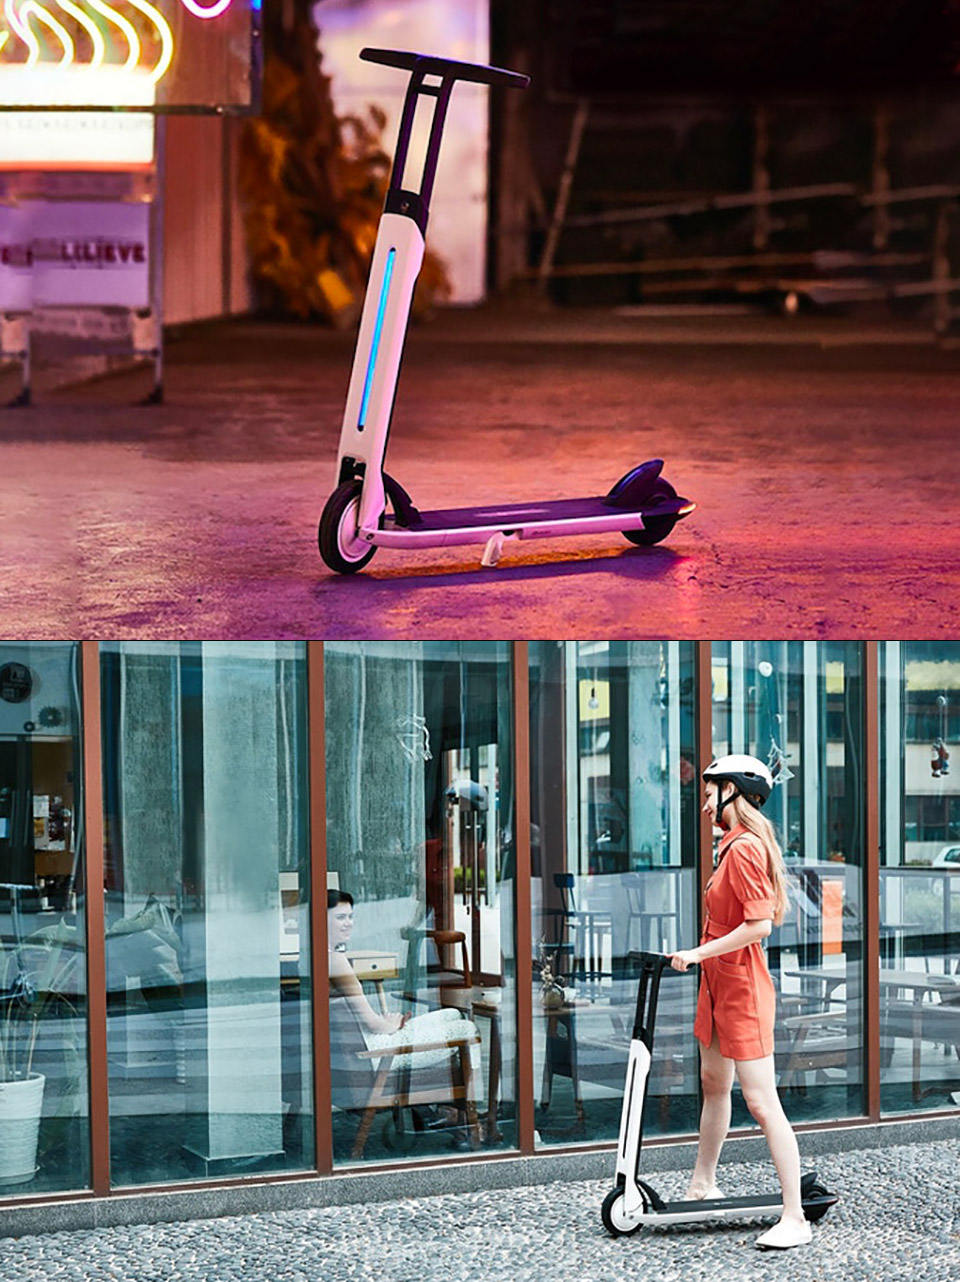 Segway Air T15 Electric Scooter